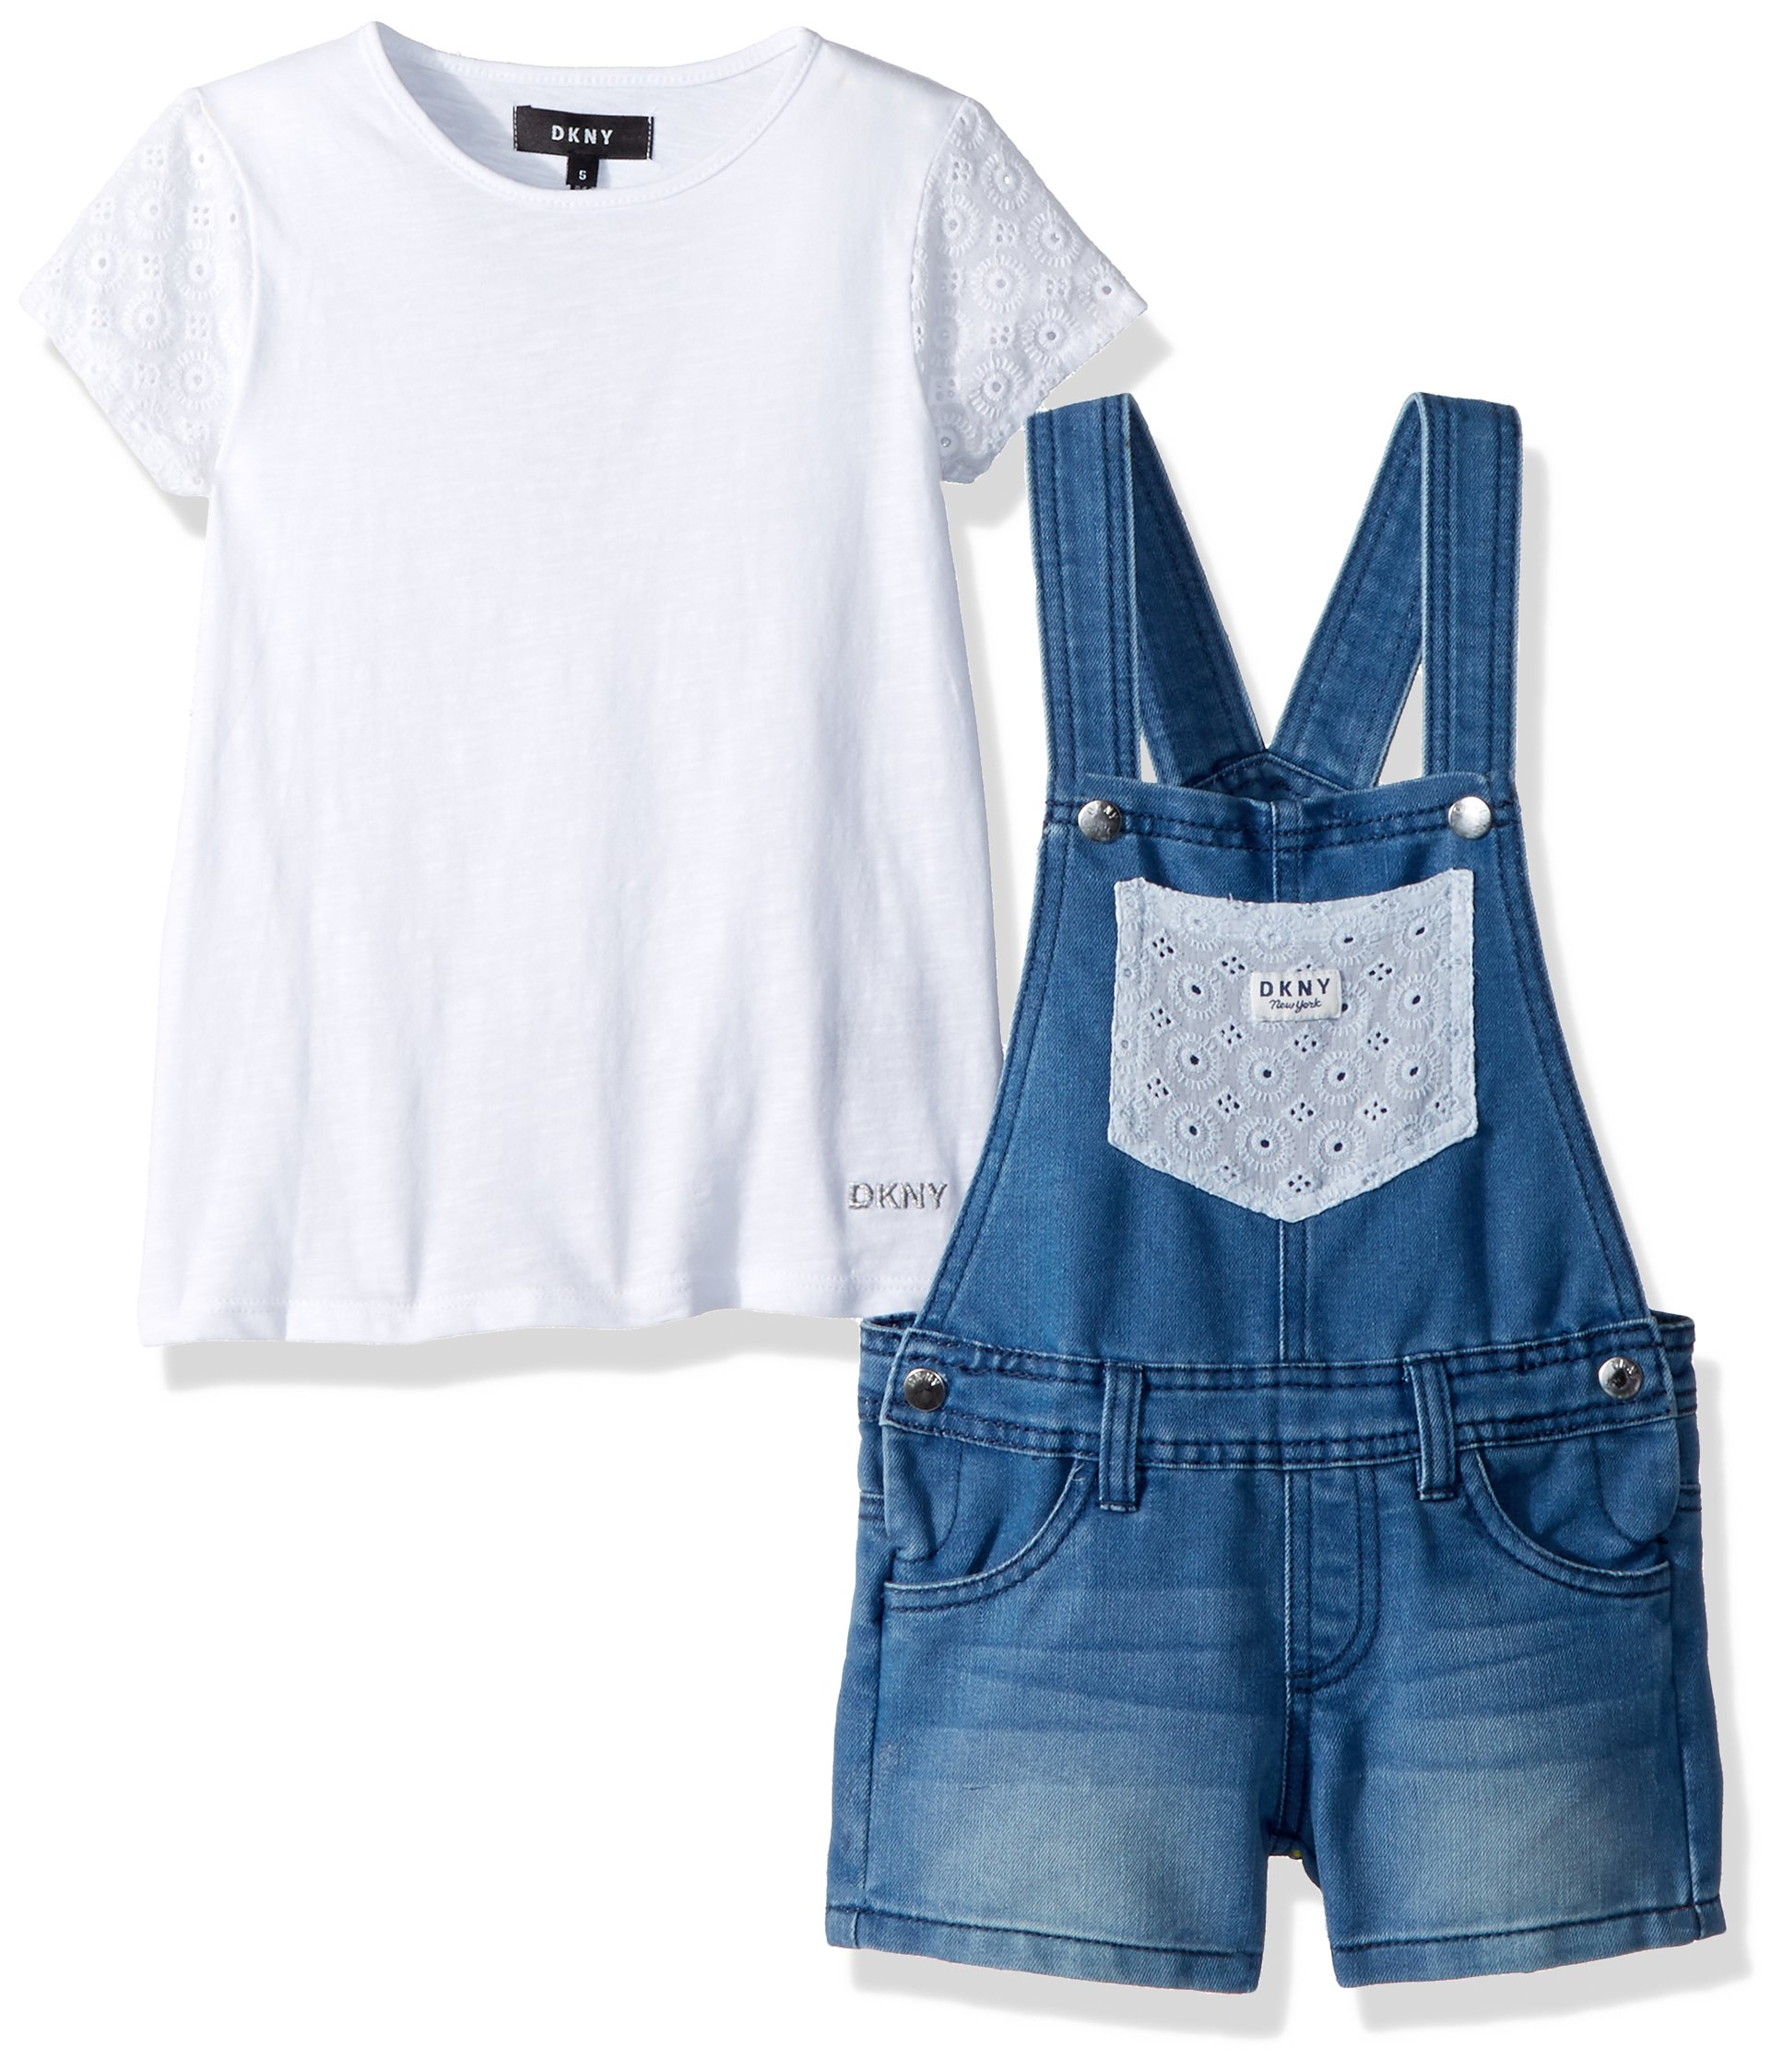 DKNY Little Girls' Fashion Top and Short Set, Overall Crochet Light Wash, 6